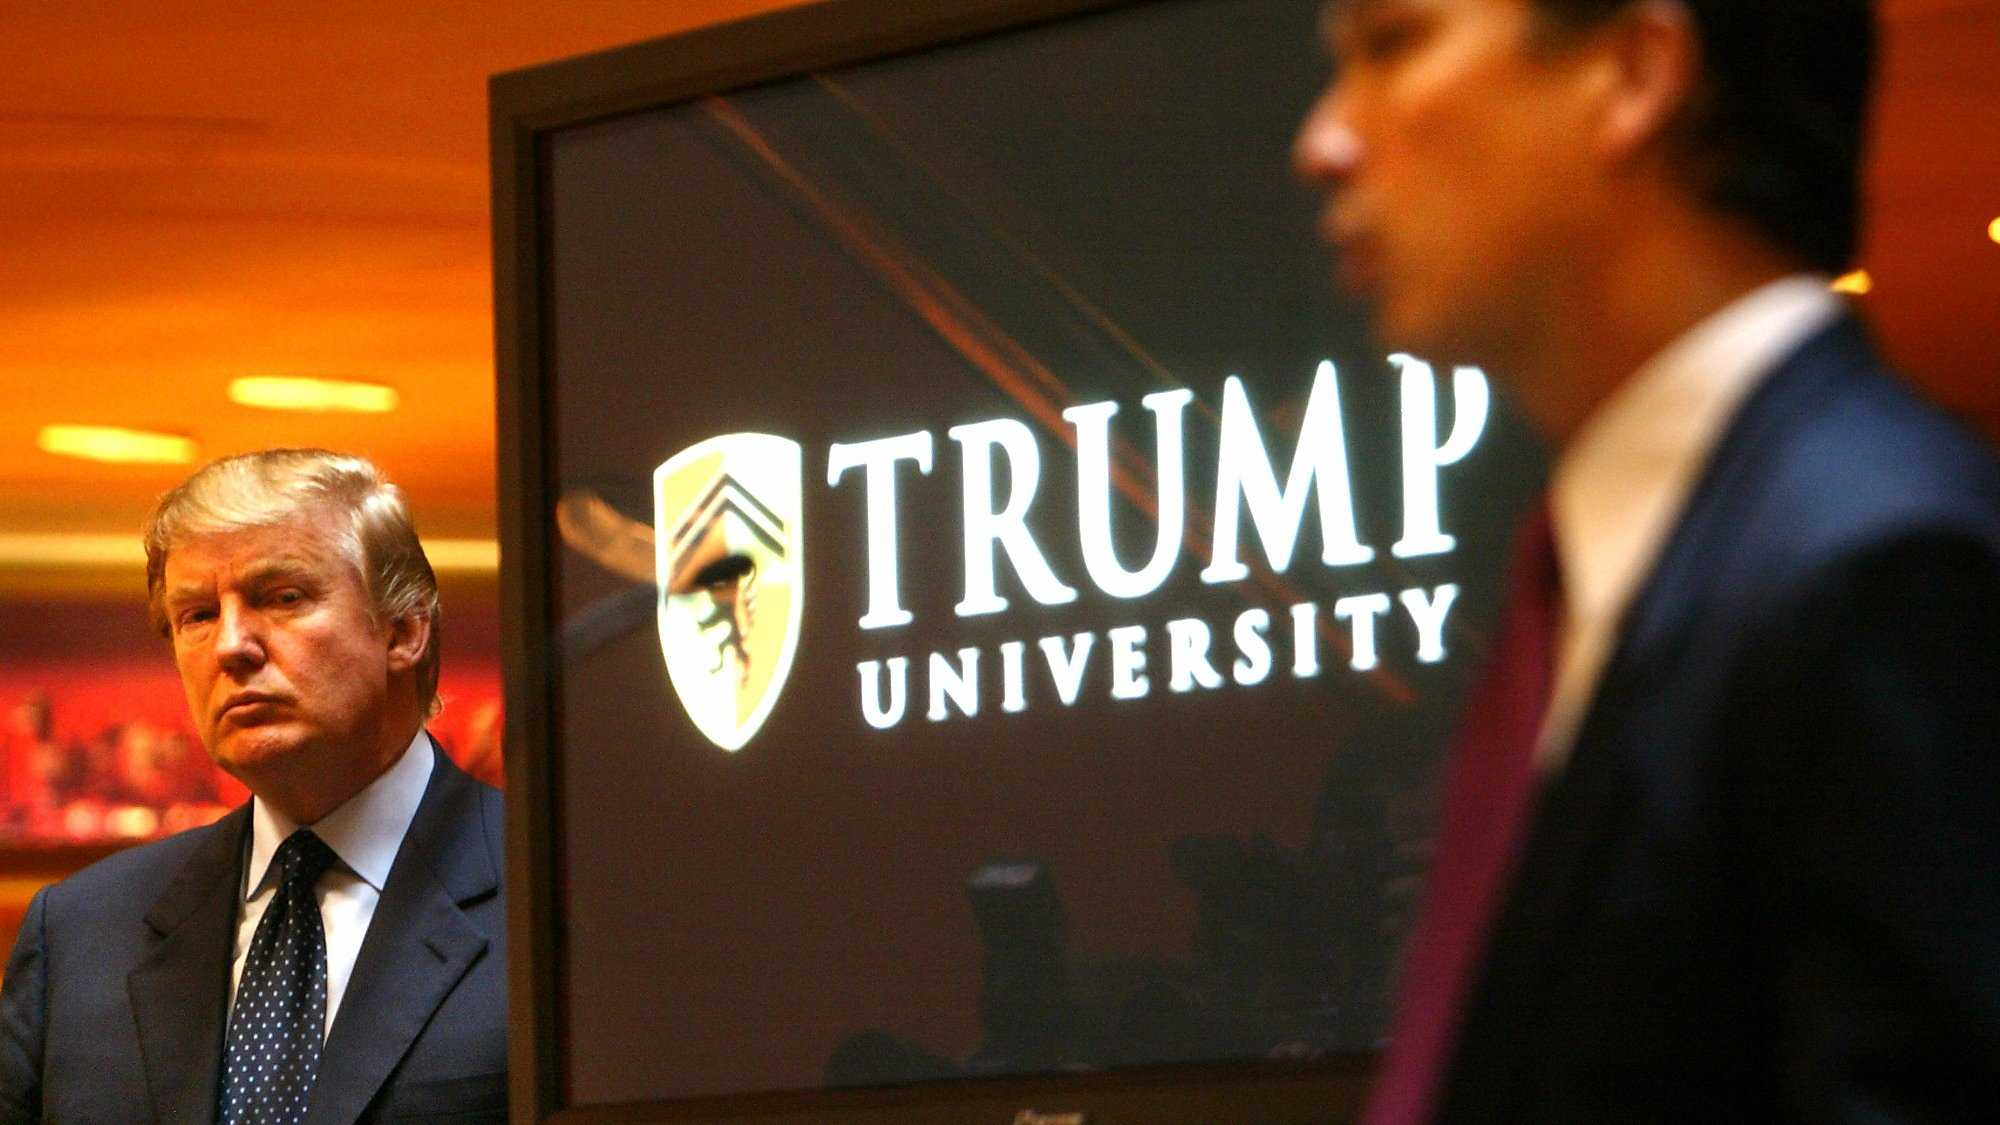 In this Monday May 23, 2005 file photo Donald Trump, left, listens as Michael Sexton introduces him to announce the establishment of Trump University at a press conference in New York.